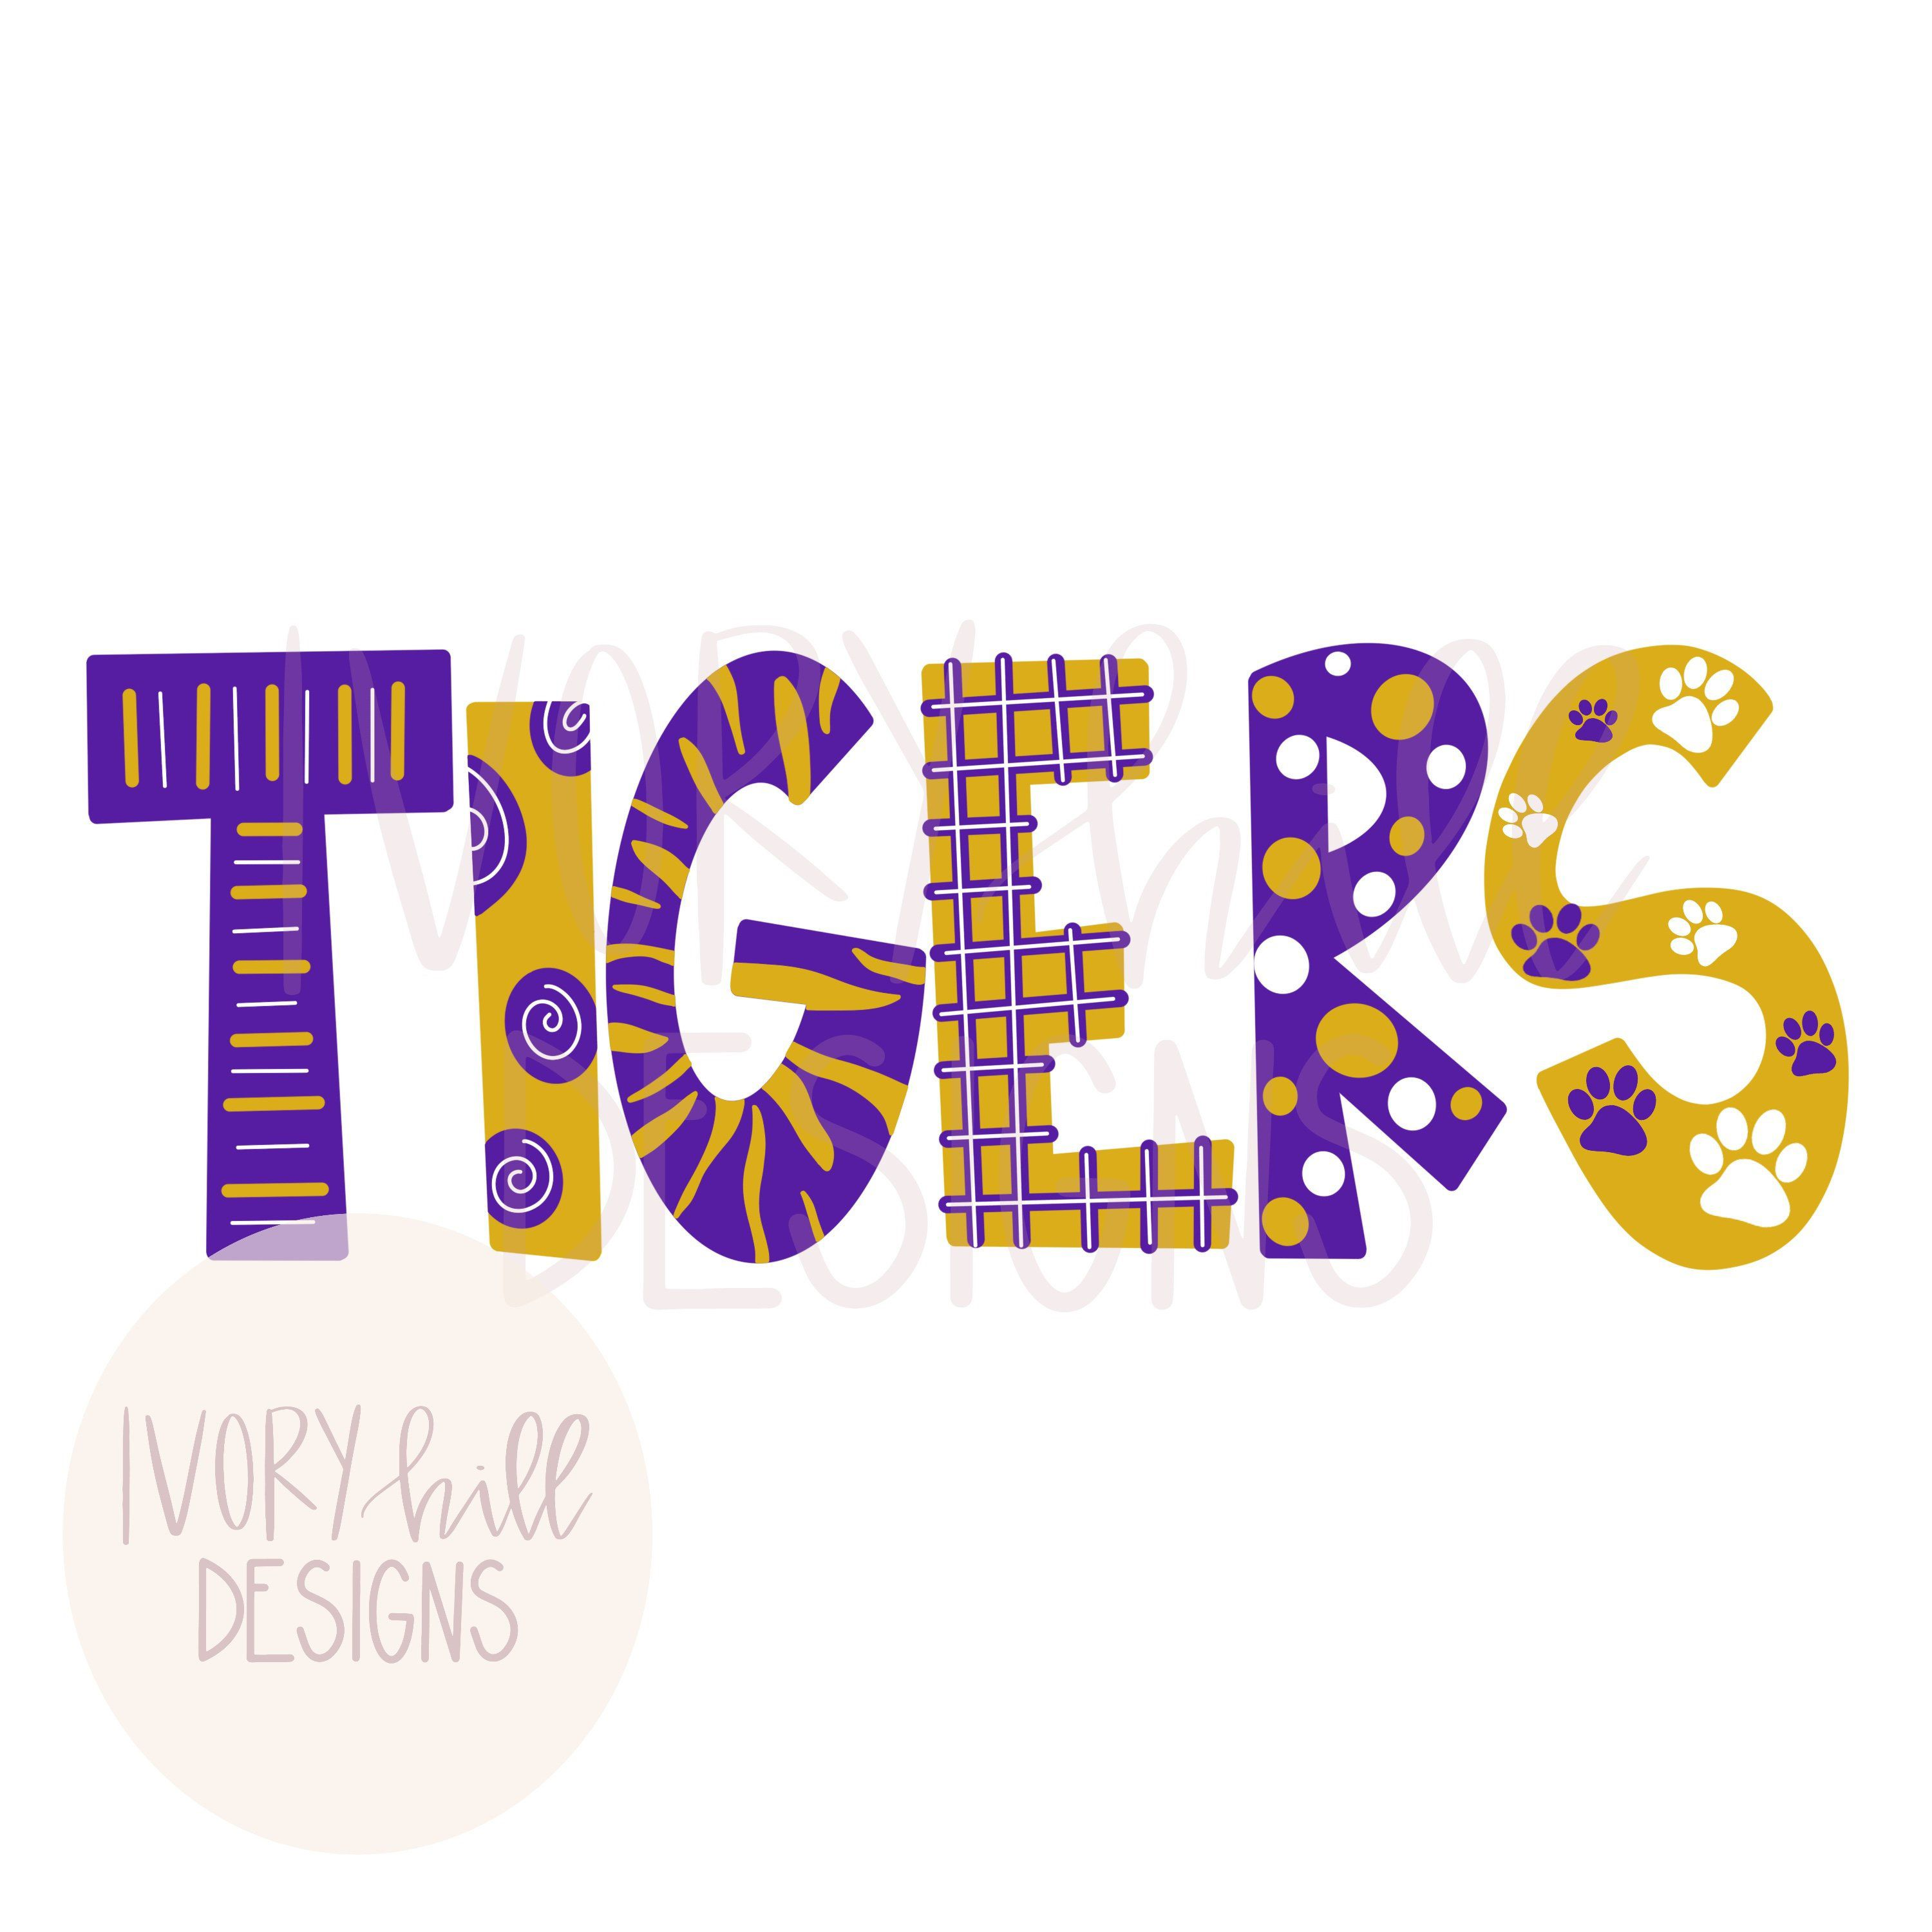 Louisiana Lsu Tigers Printable Digital Download Png Clipart For Sublimation And Inkjet Printing By Ivoryhilldesigns On Etsy Lsu Tigers Football Lsu Lsu Tigers